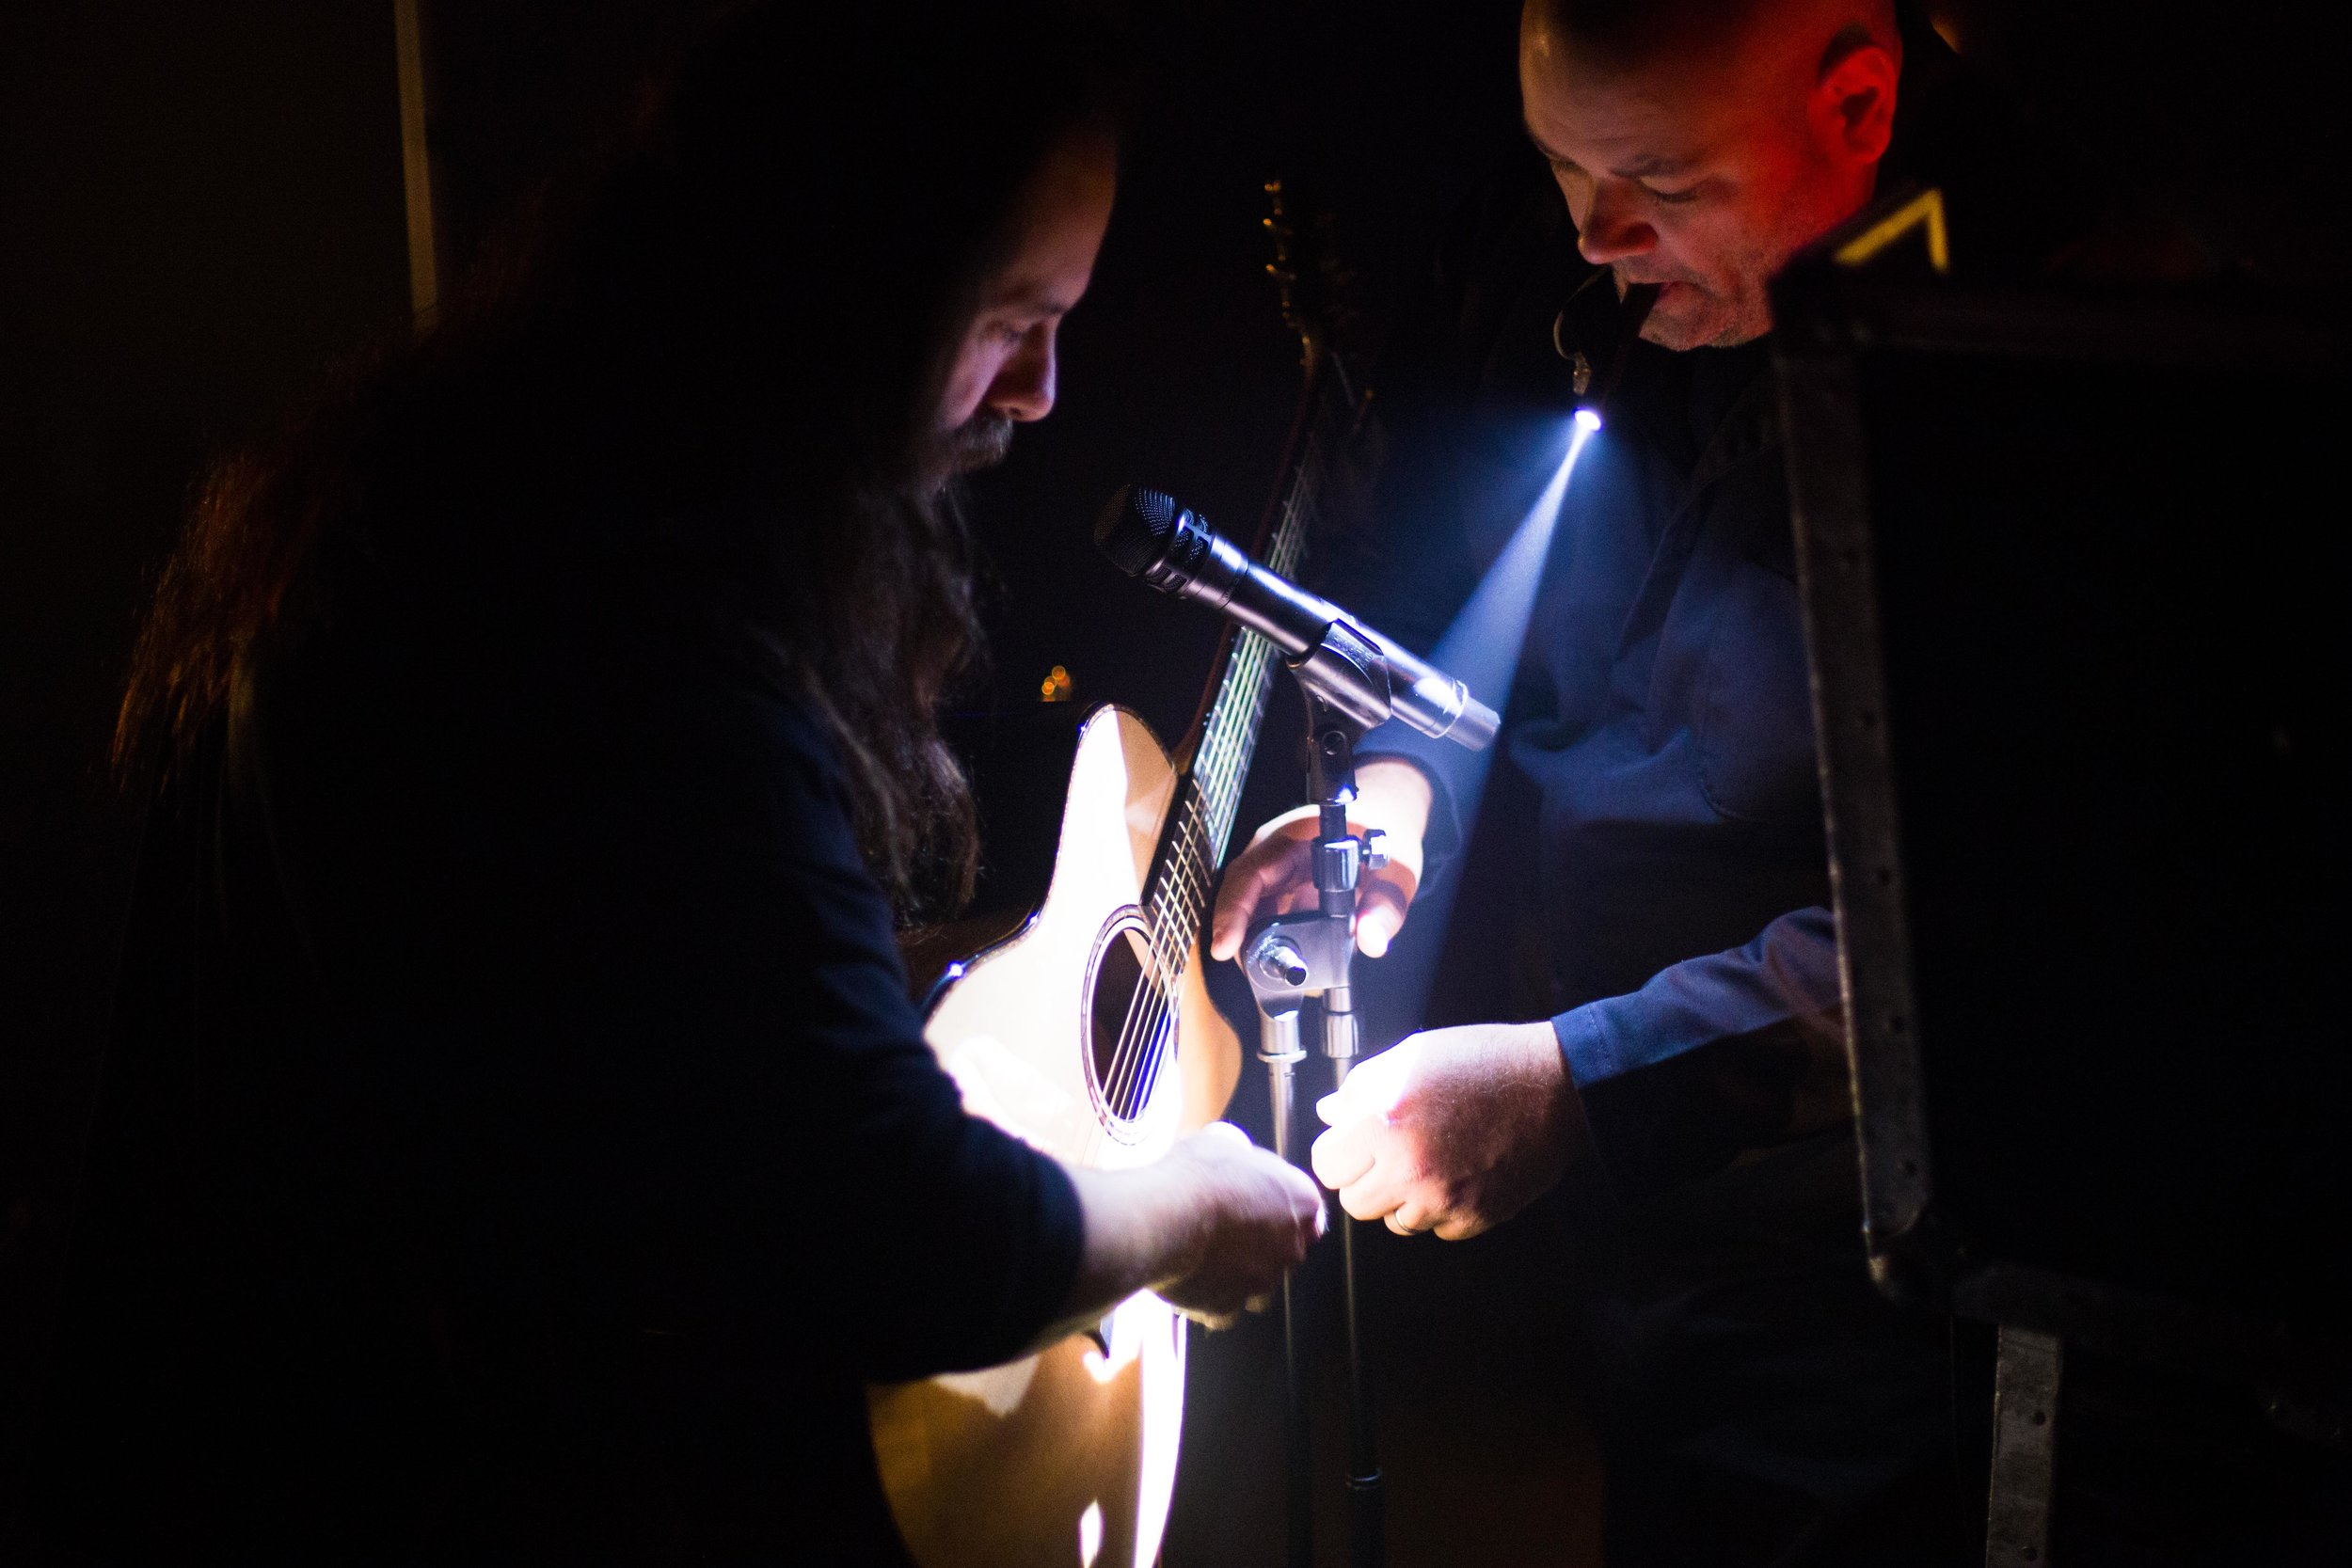 IMG_0384 Petrucci adjusts guitar backstage.jpg